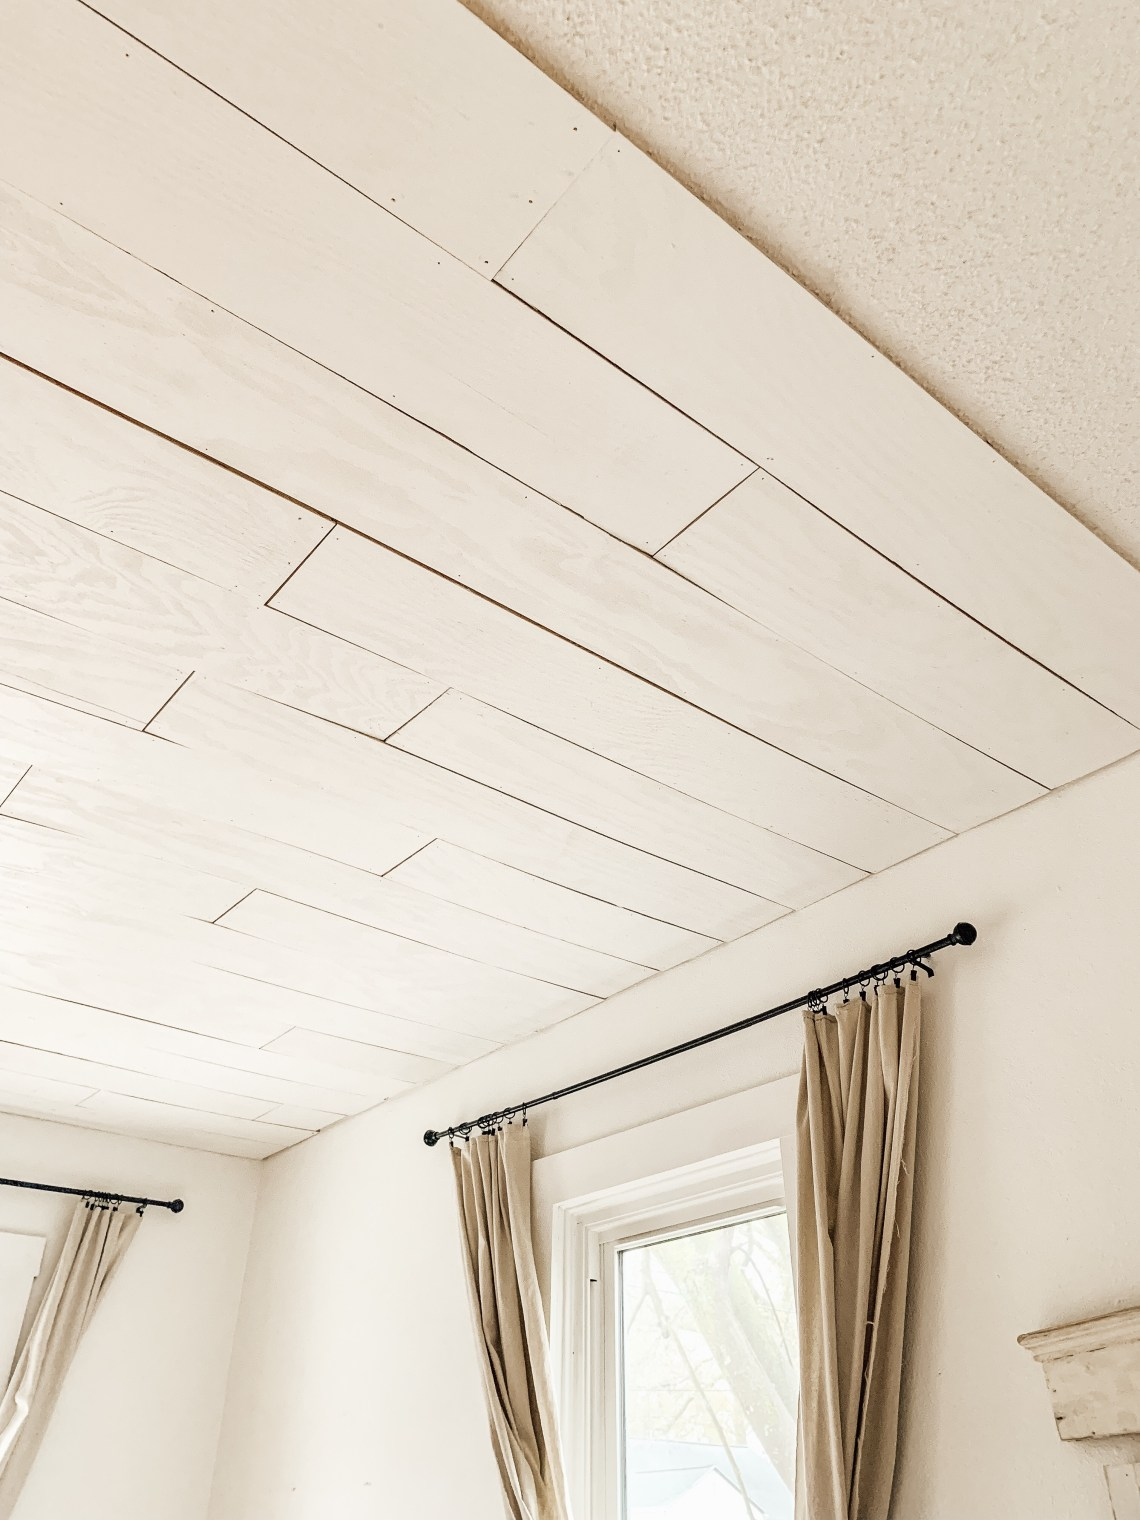 How to Plywood Plank Over Popcorn Ceiling